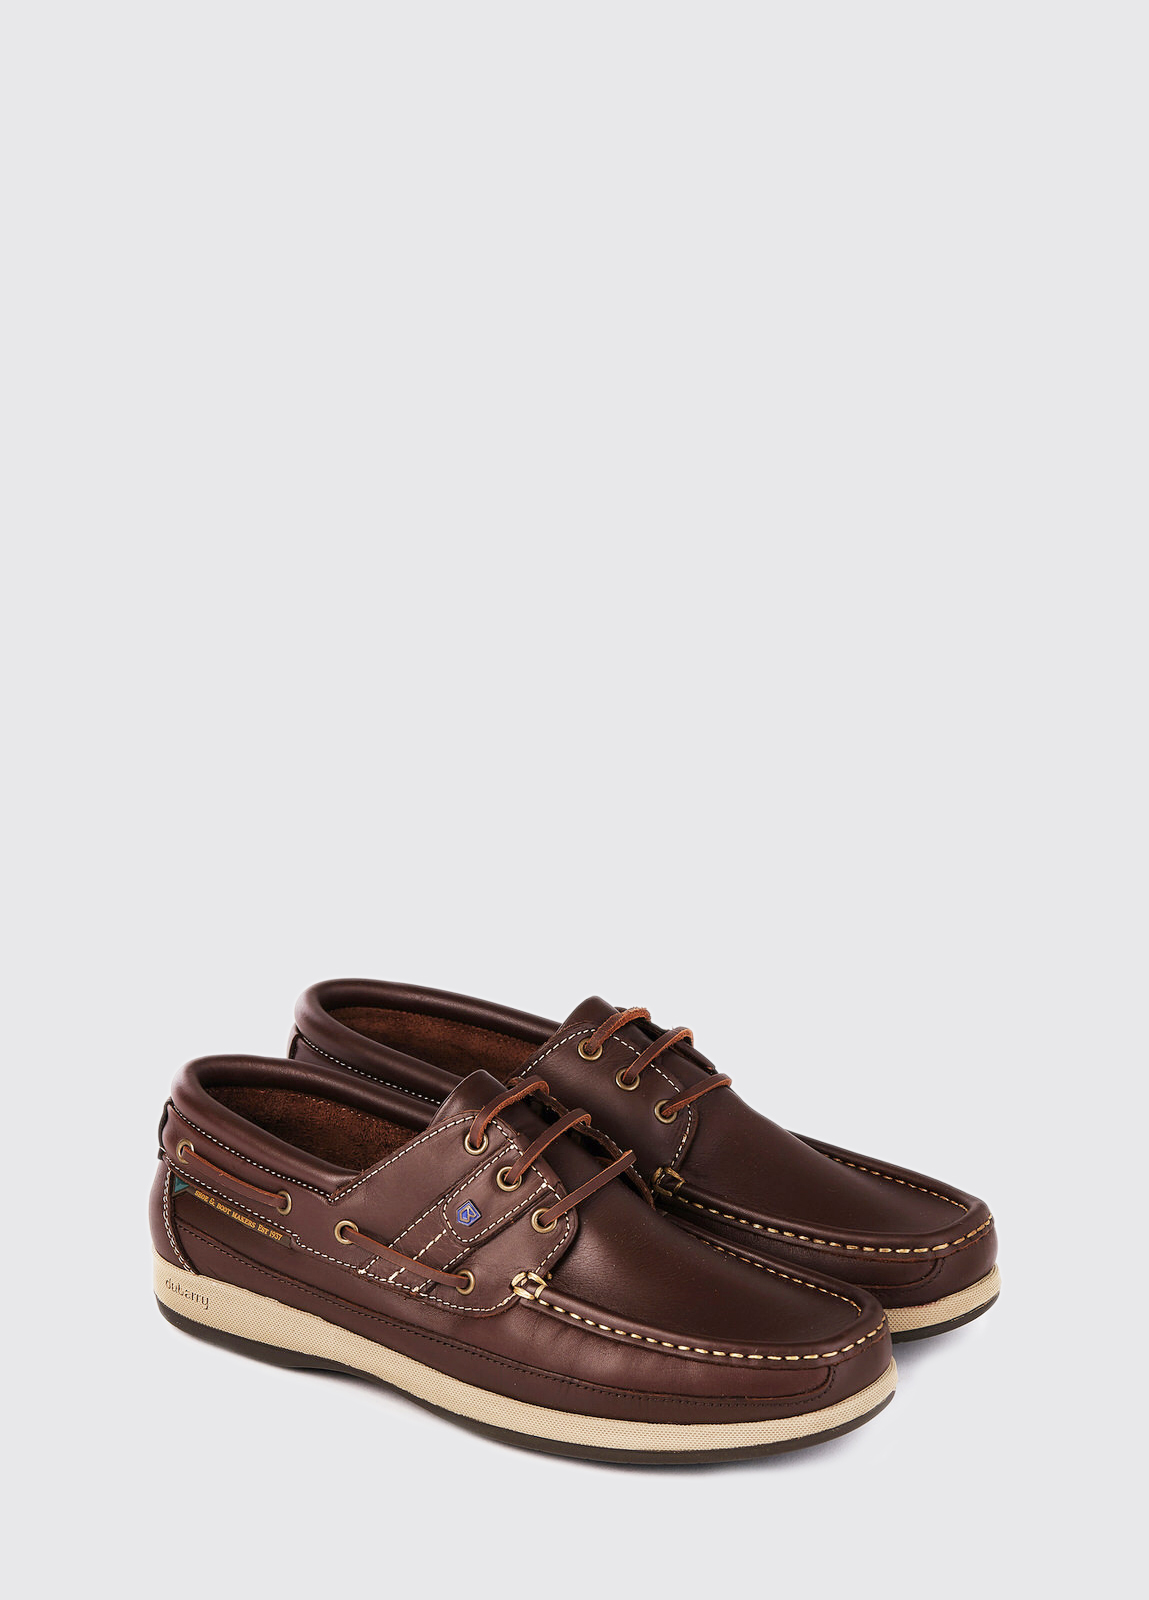 Atlantic Deck Shoe - Chestnut